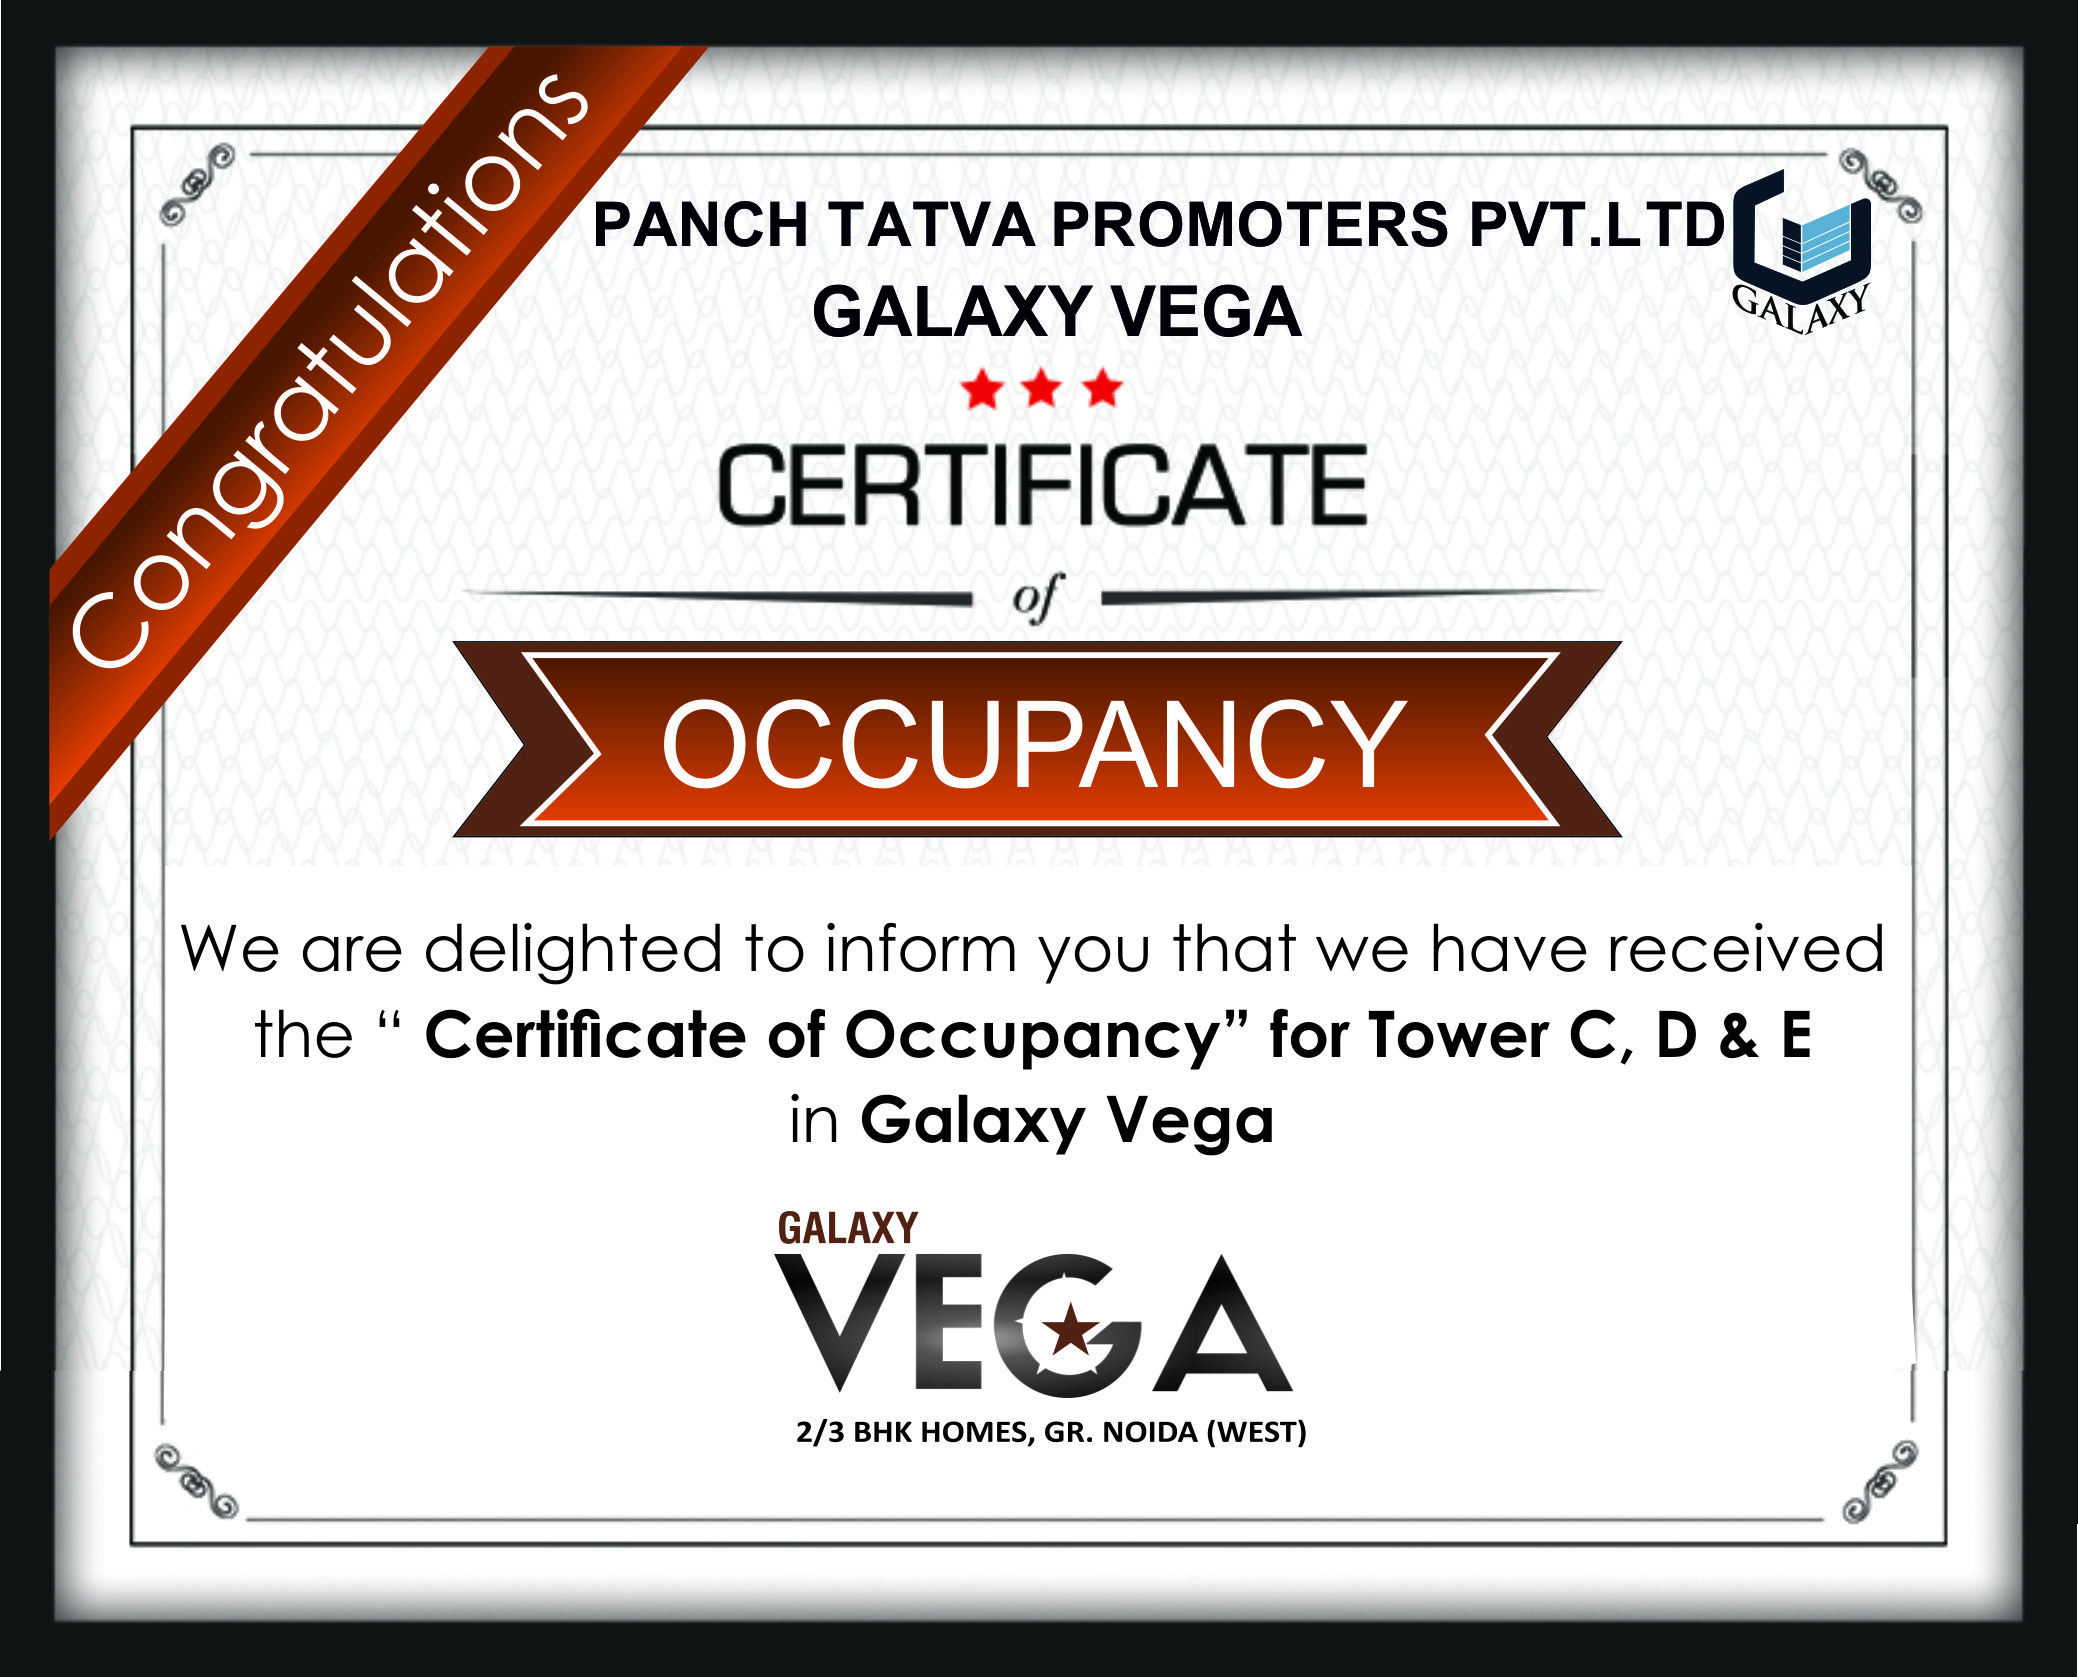 Occupancy certificate for galaxy vega galaxygroup galaxyshoppe occupancy certificate for galaxy vega galaxygroup galaxyshoppe galaxyroyale galaxydiamondplaza 1betcityfo Images